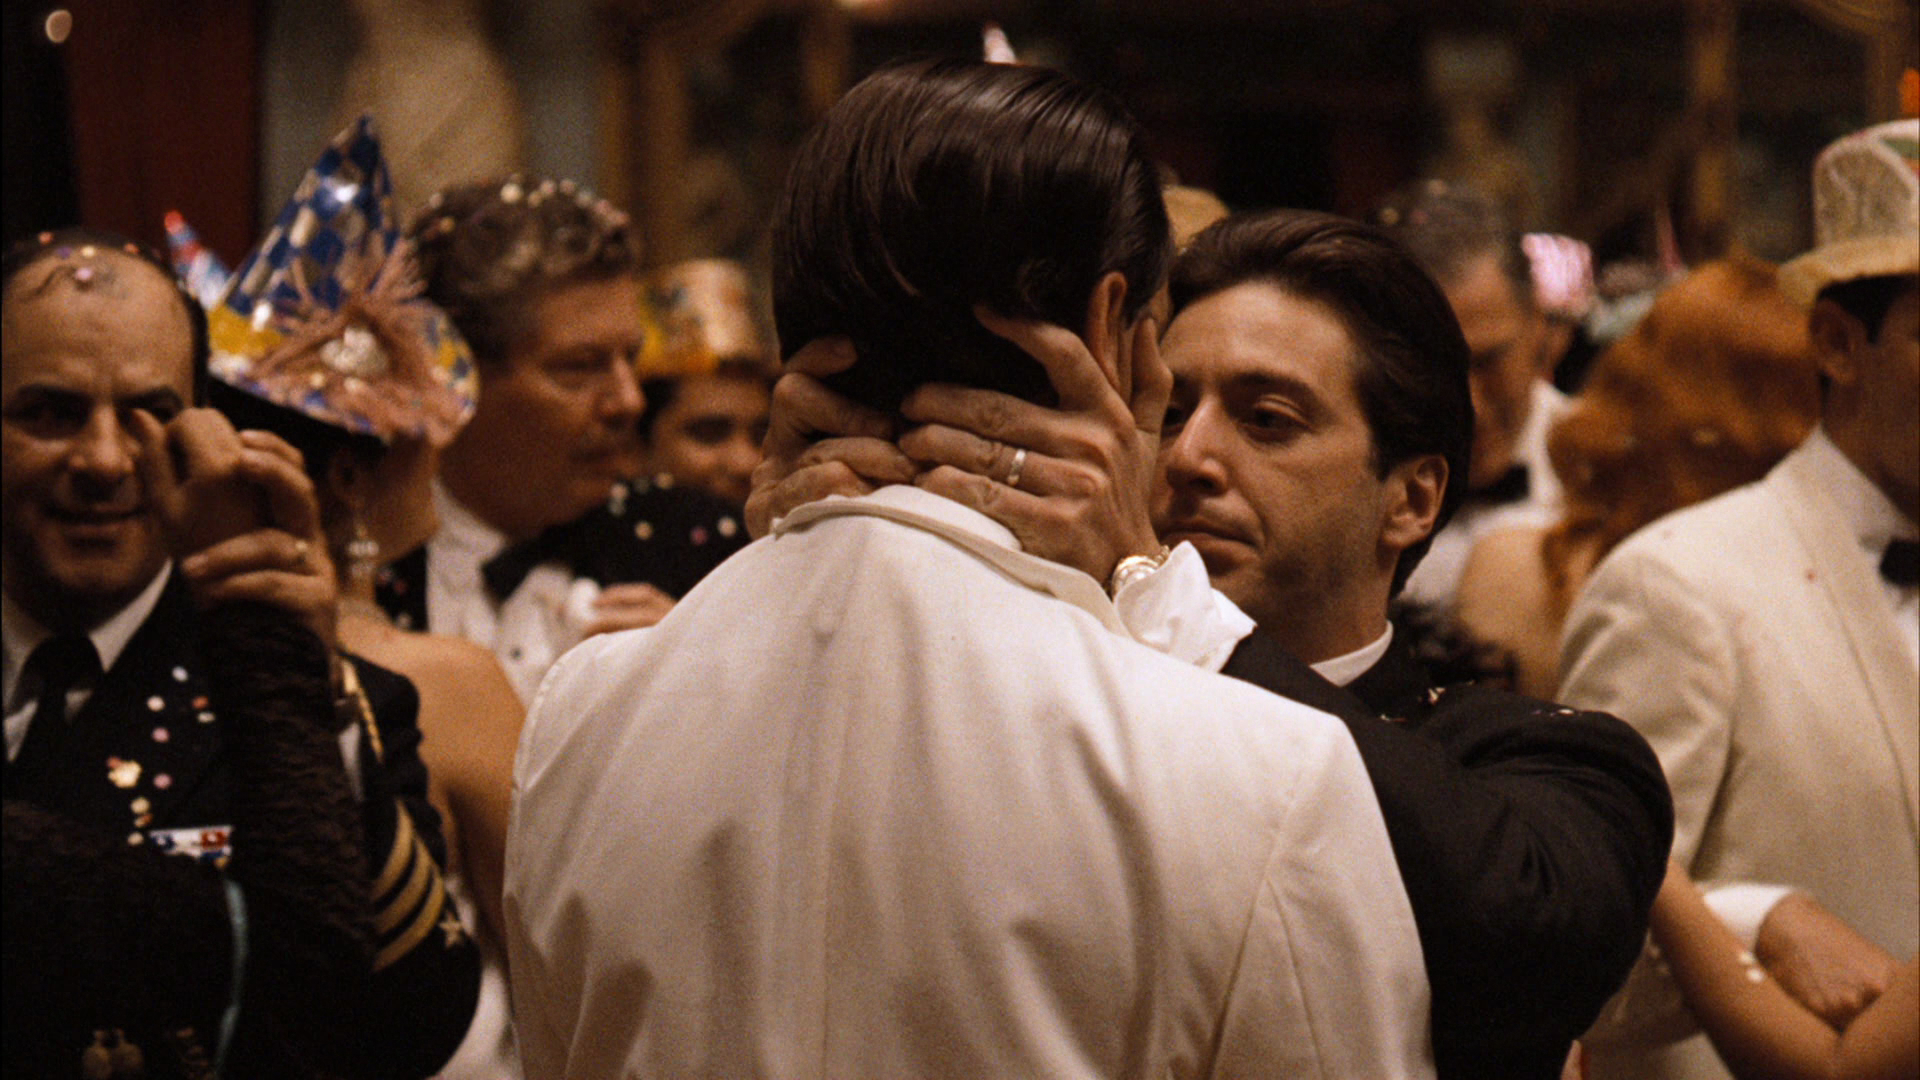 al-pacino-godfather-michael-corleone-john-cazale-fresh-hd-4027646